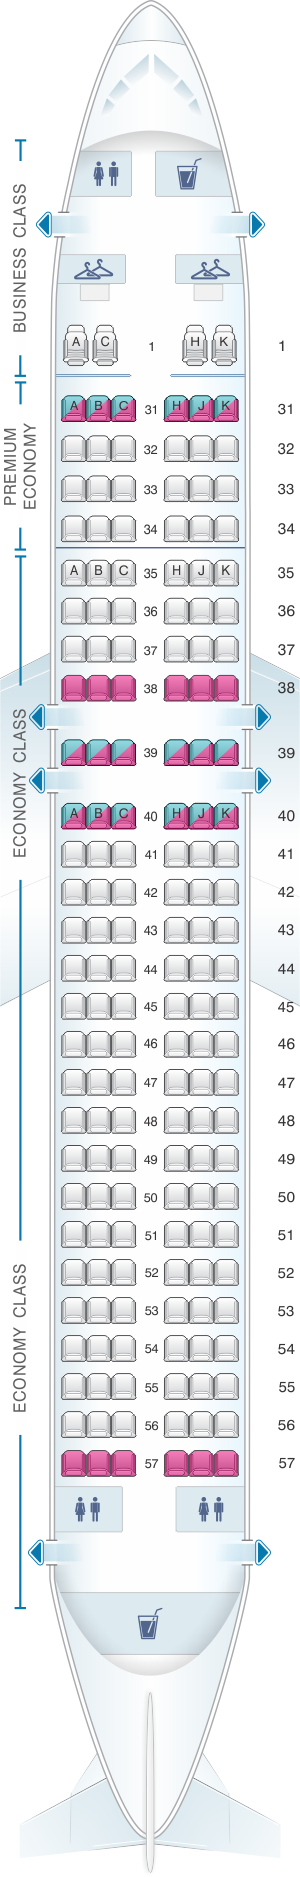 Seat map for China Southern Airlines Airbus A32E